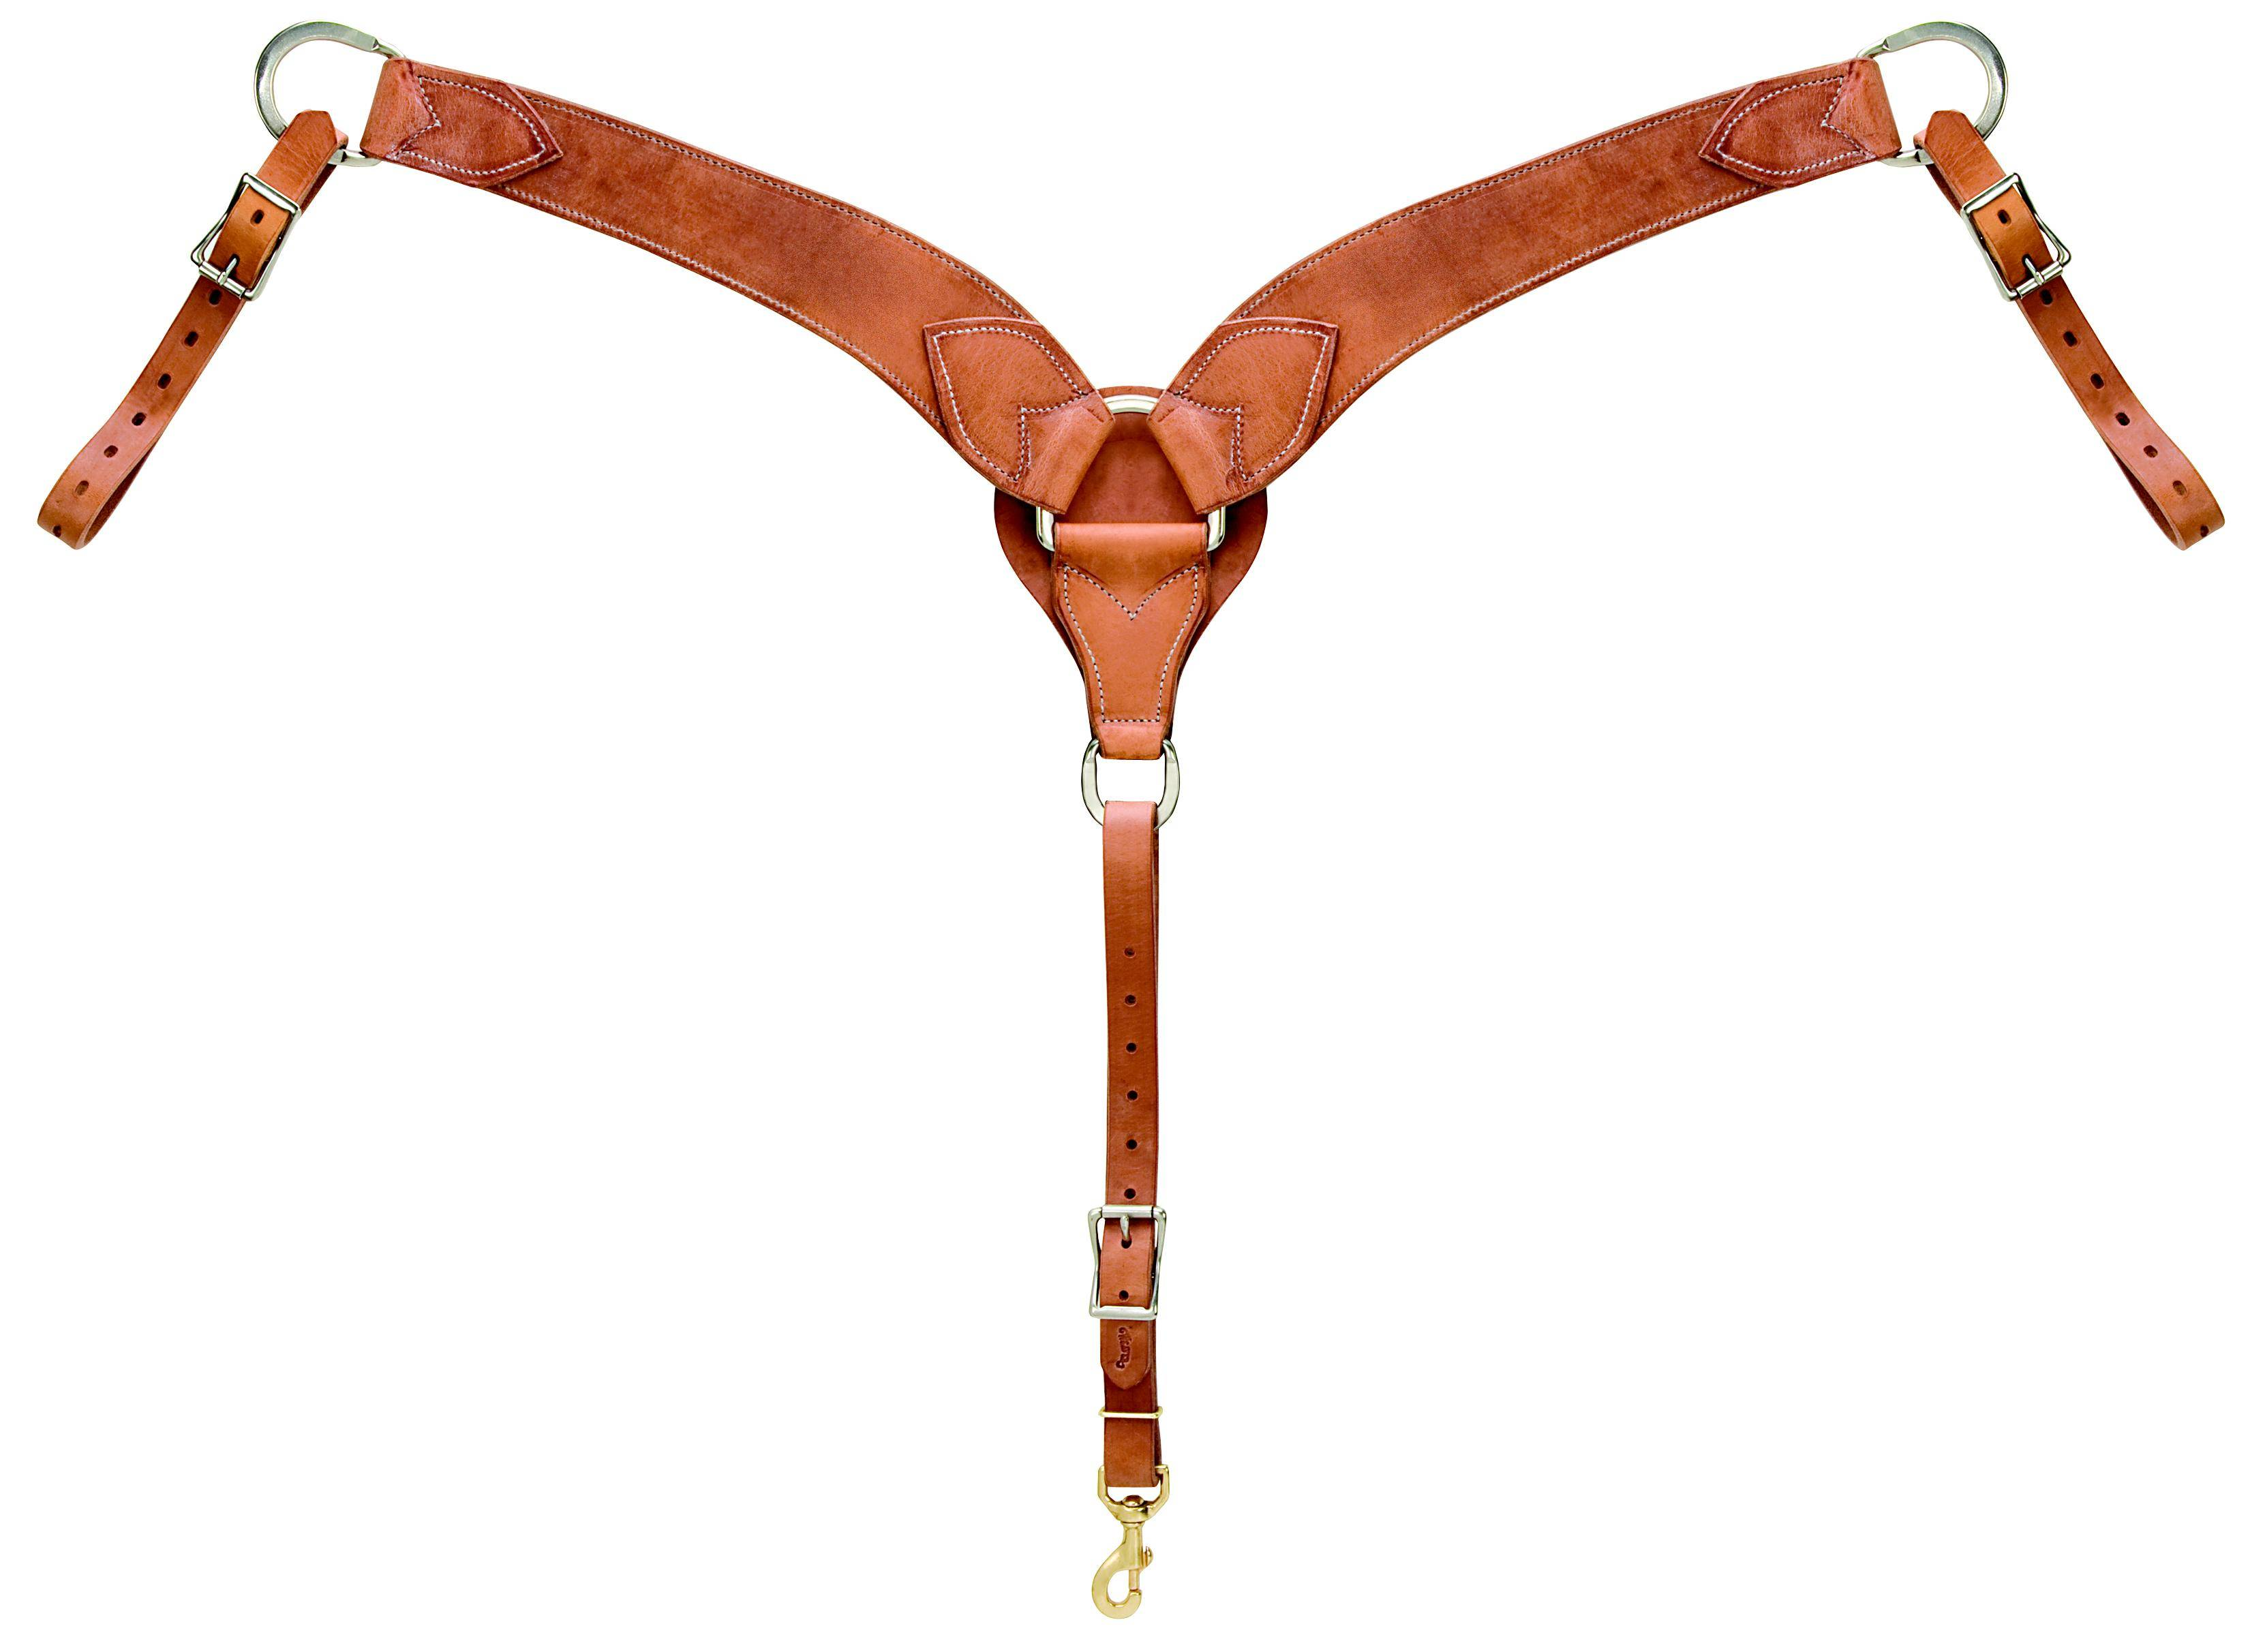 Weaver Leather Protack Roper Breast Collar